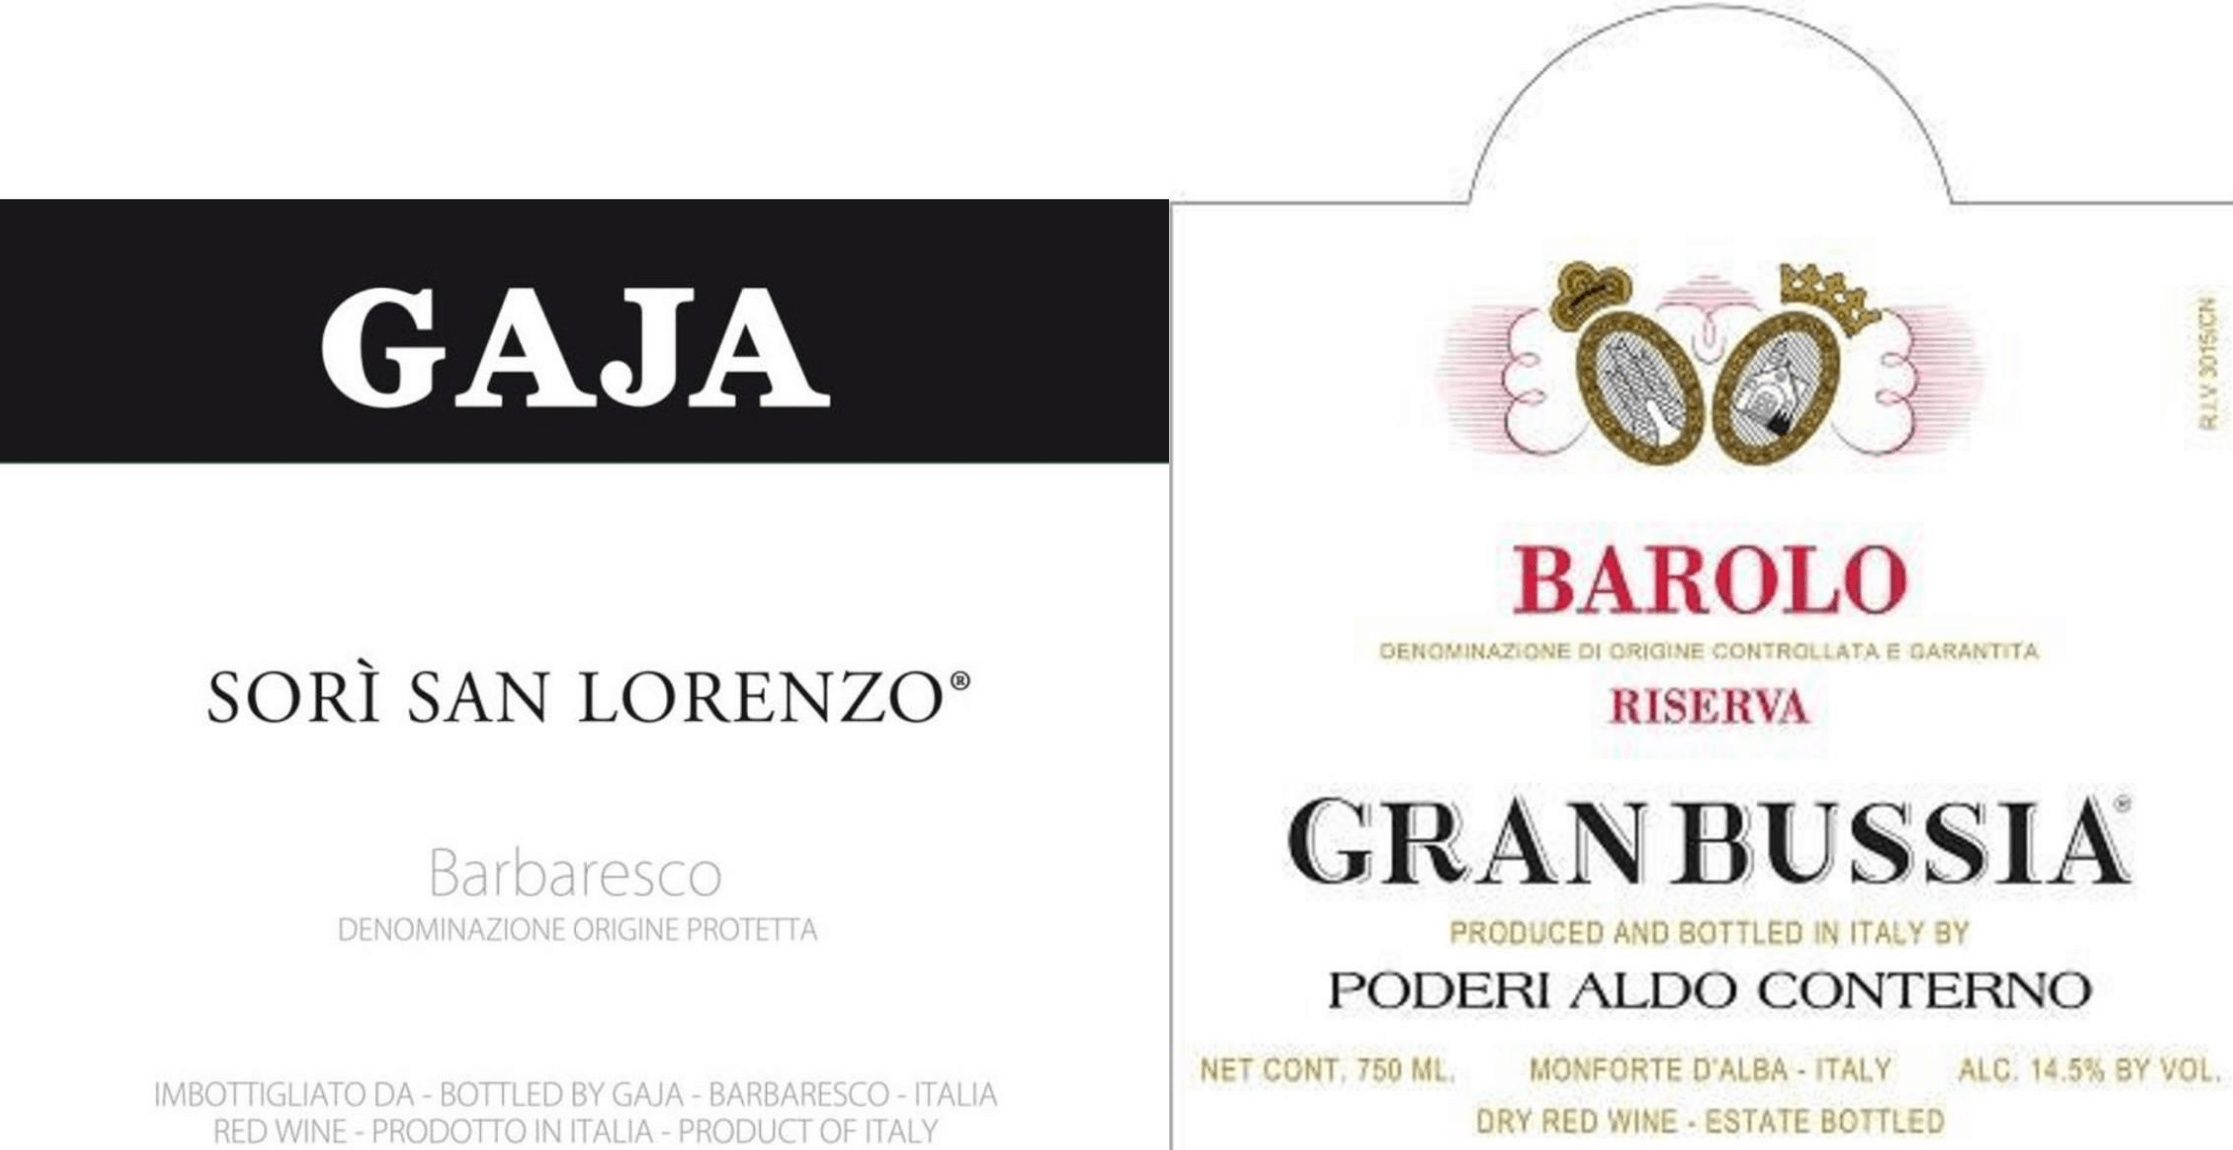 Labels from Barolo and Barbaresco wines